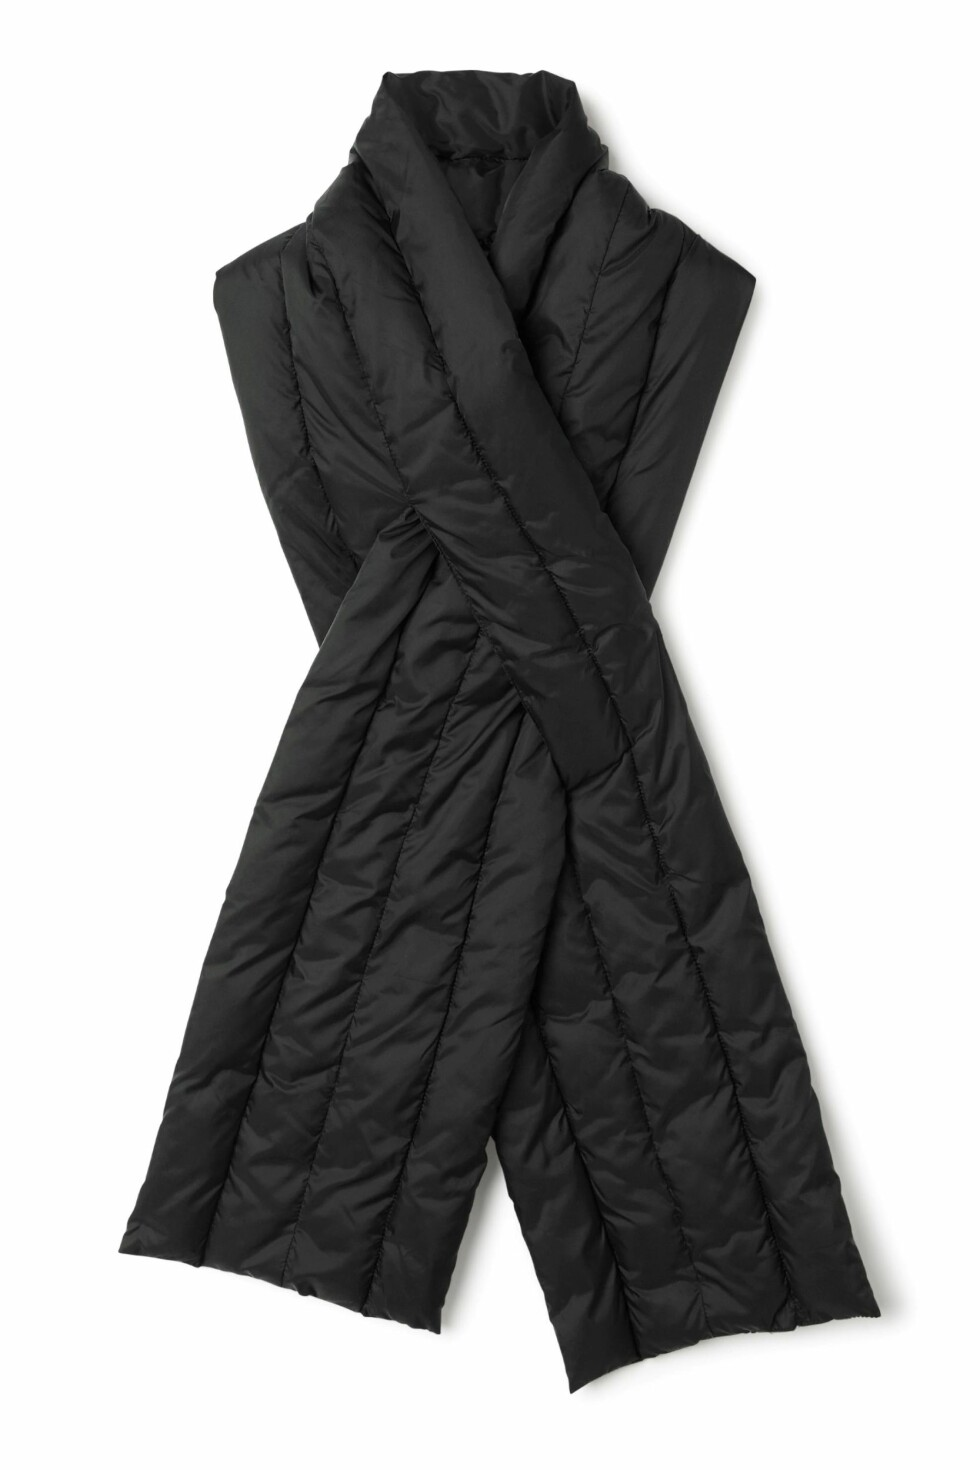 Skjerf fra Weekday | kr 300 | http://shop.weekday.com/se/Womens_shop/Accessories/All/Stream_padded_scarf/5131354-9205528.1#c-47958